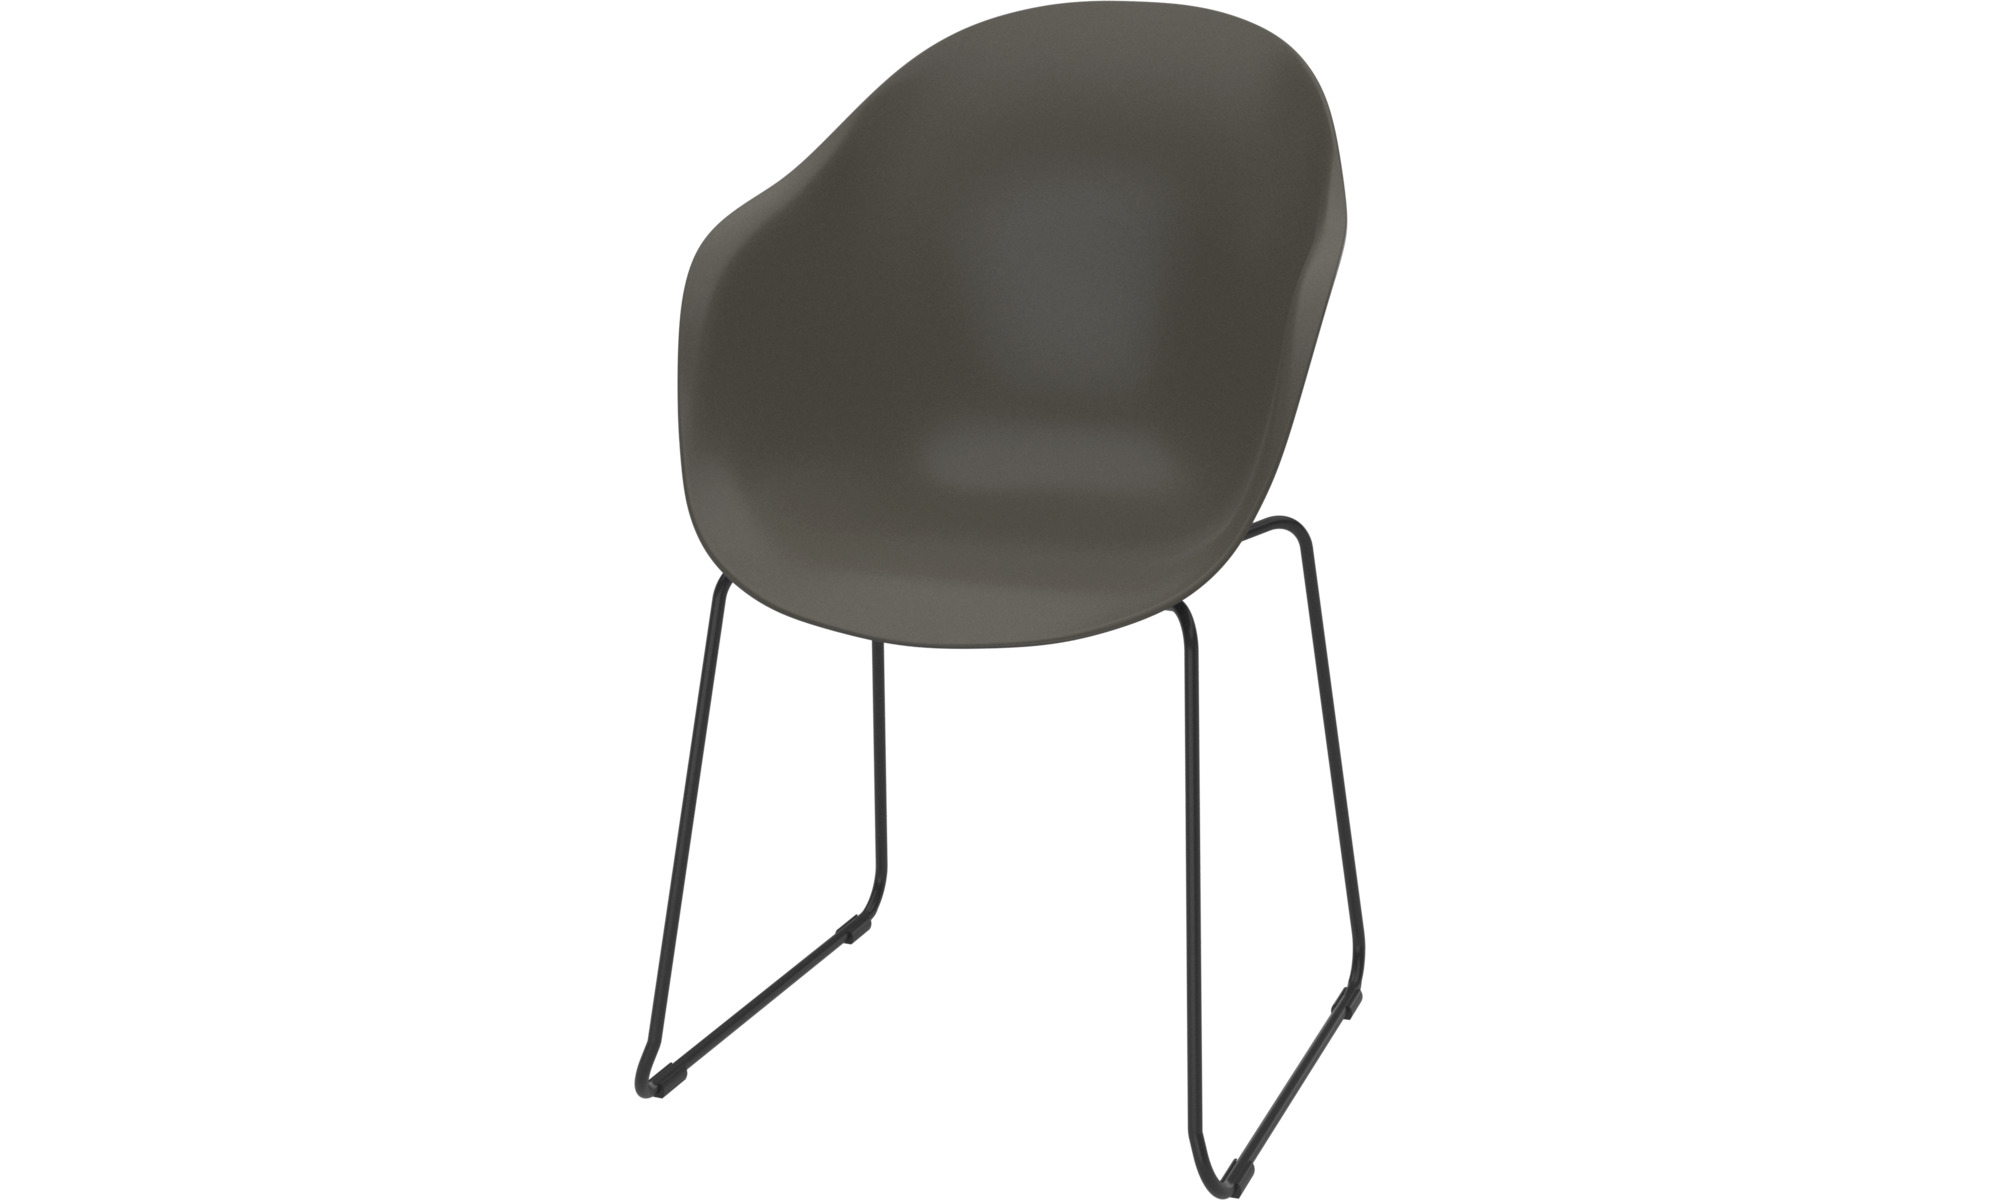 Dining chairs - Adelaide chair (for in and outdoor use) - Green - Plastic